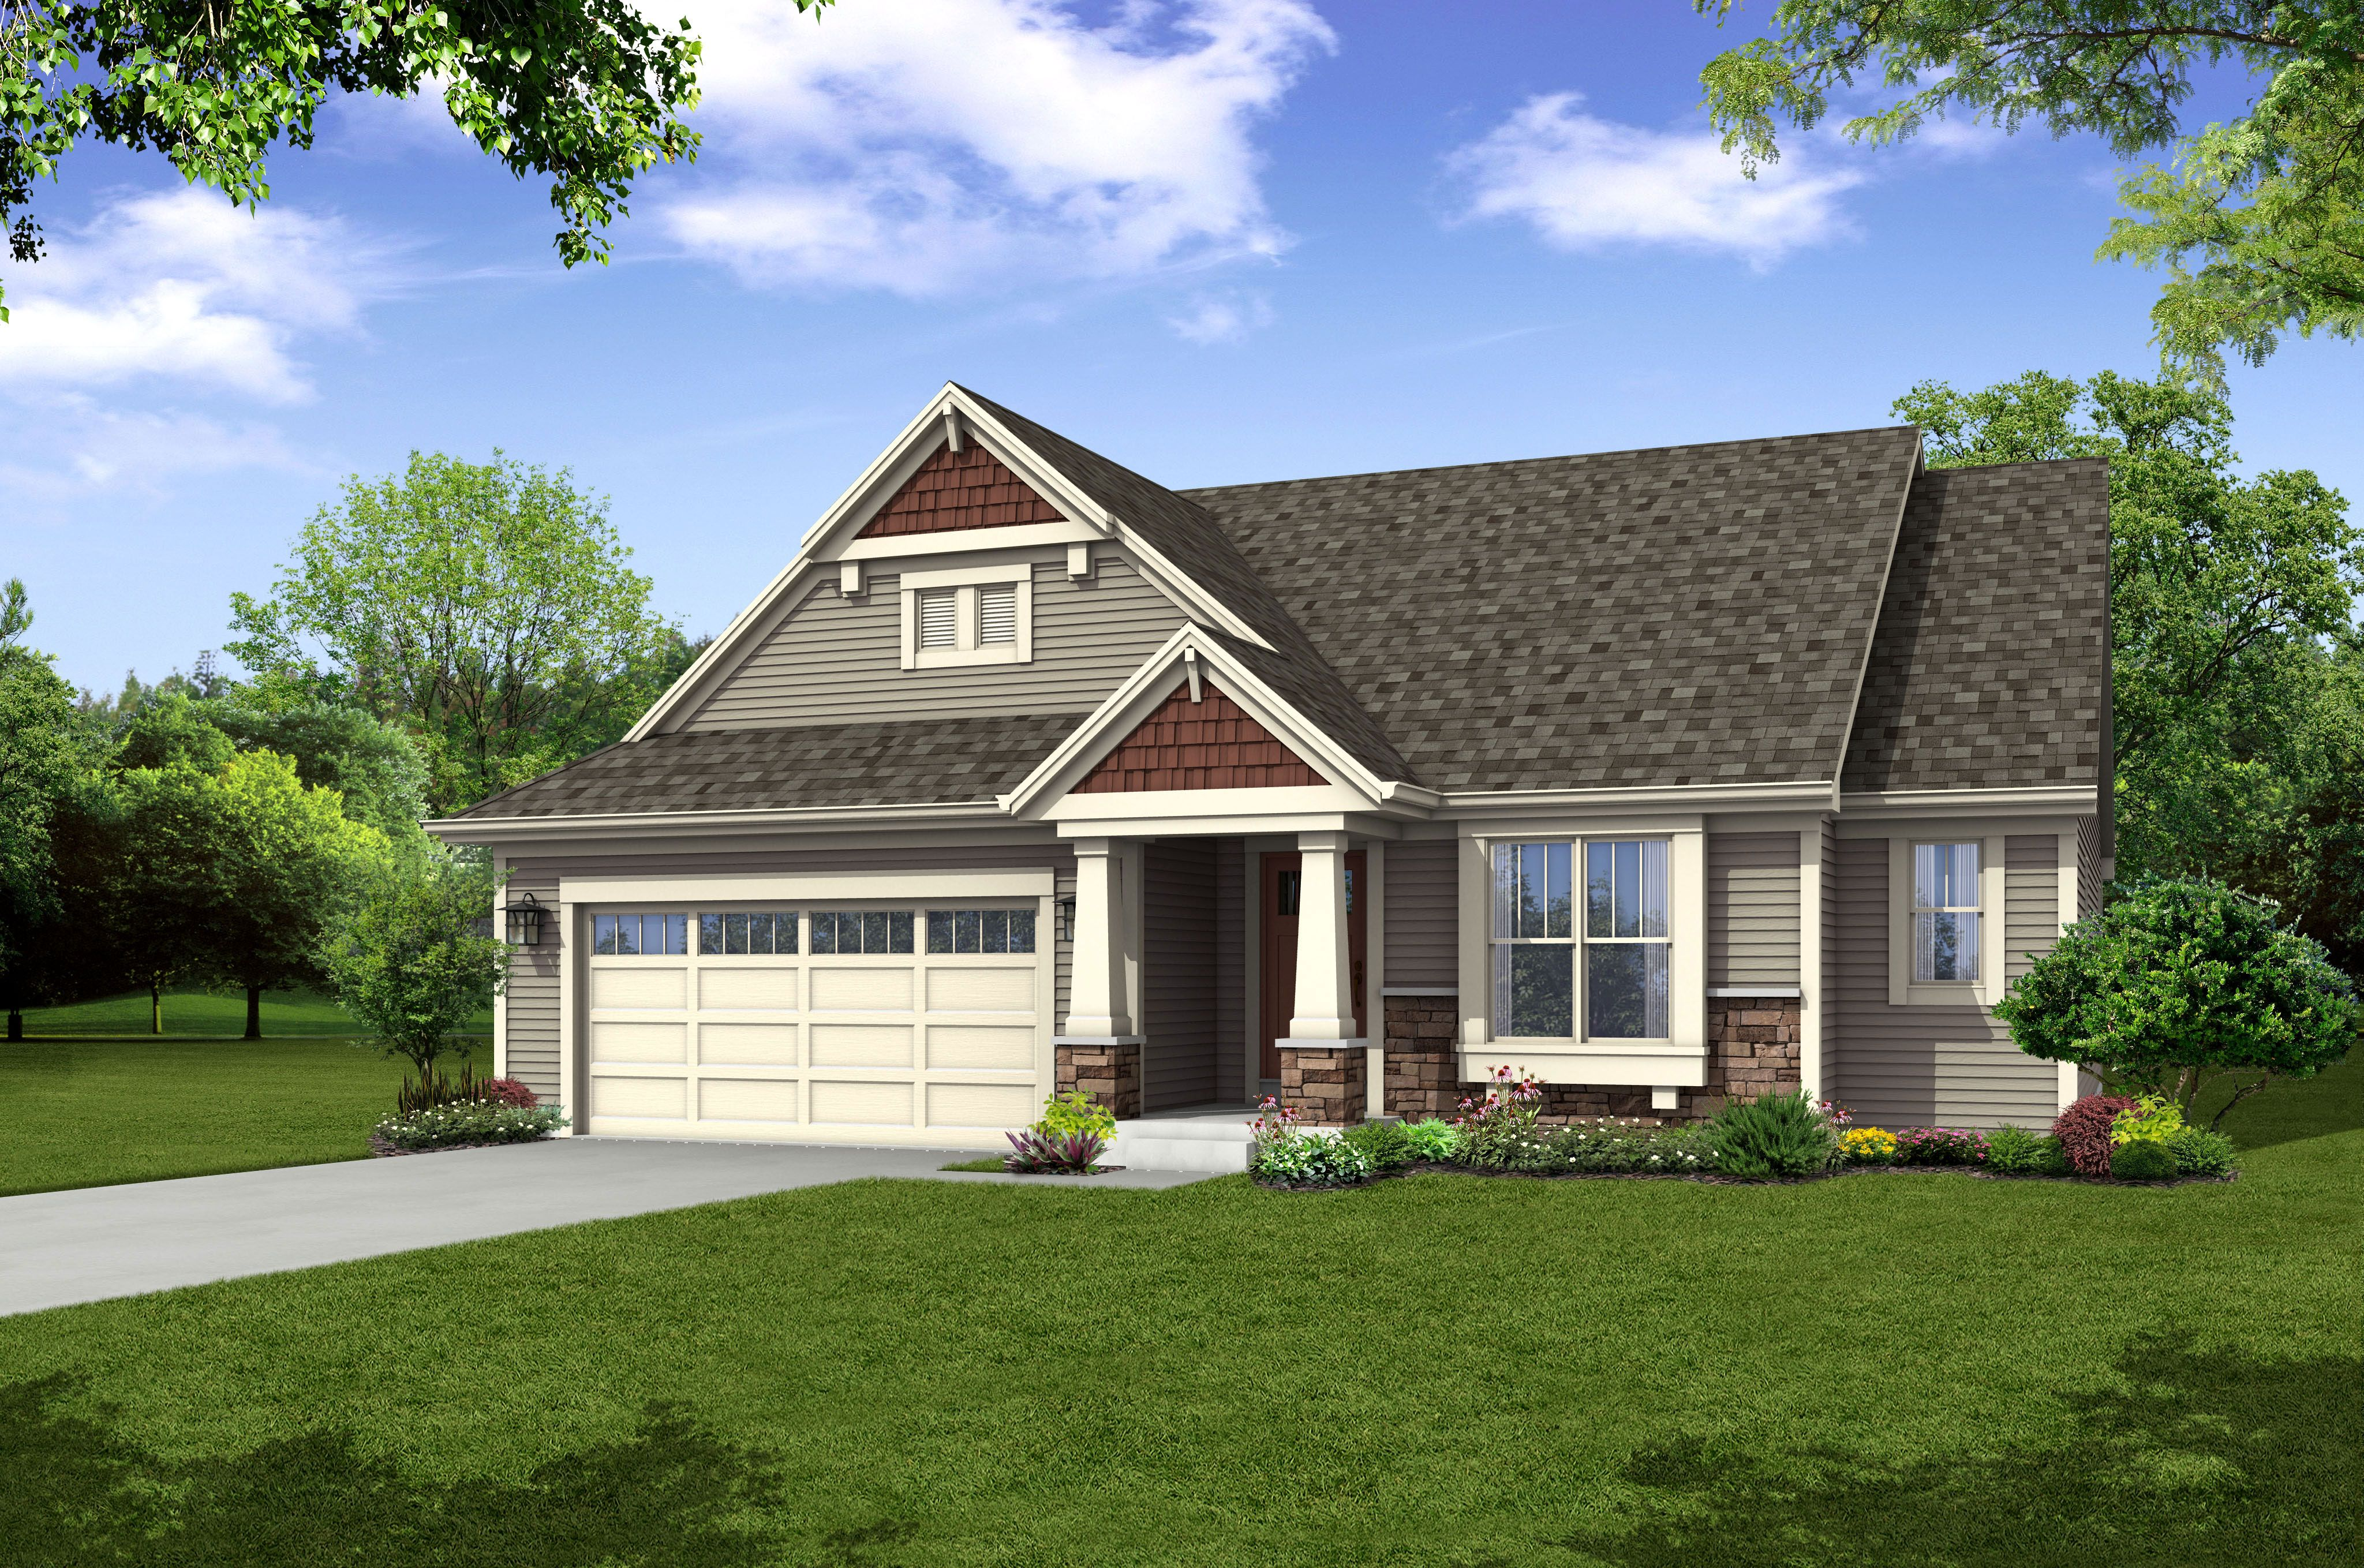 The Lauren, Plan 1640 - Arts & Crafts   Ranch   1,640 sq ft ... on arts and crafts post and beam, arts and crafts bungalow home plans, arts and crafts carriage house, arts and crafts small house plans,